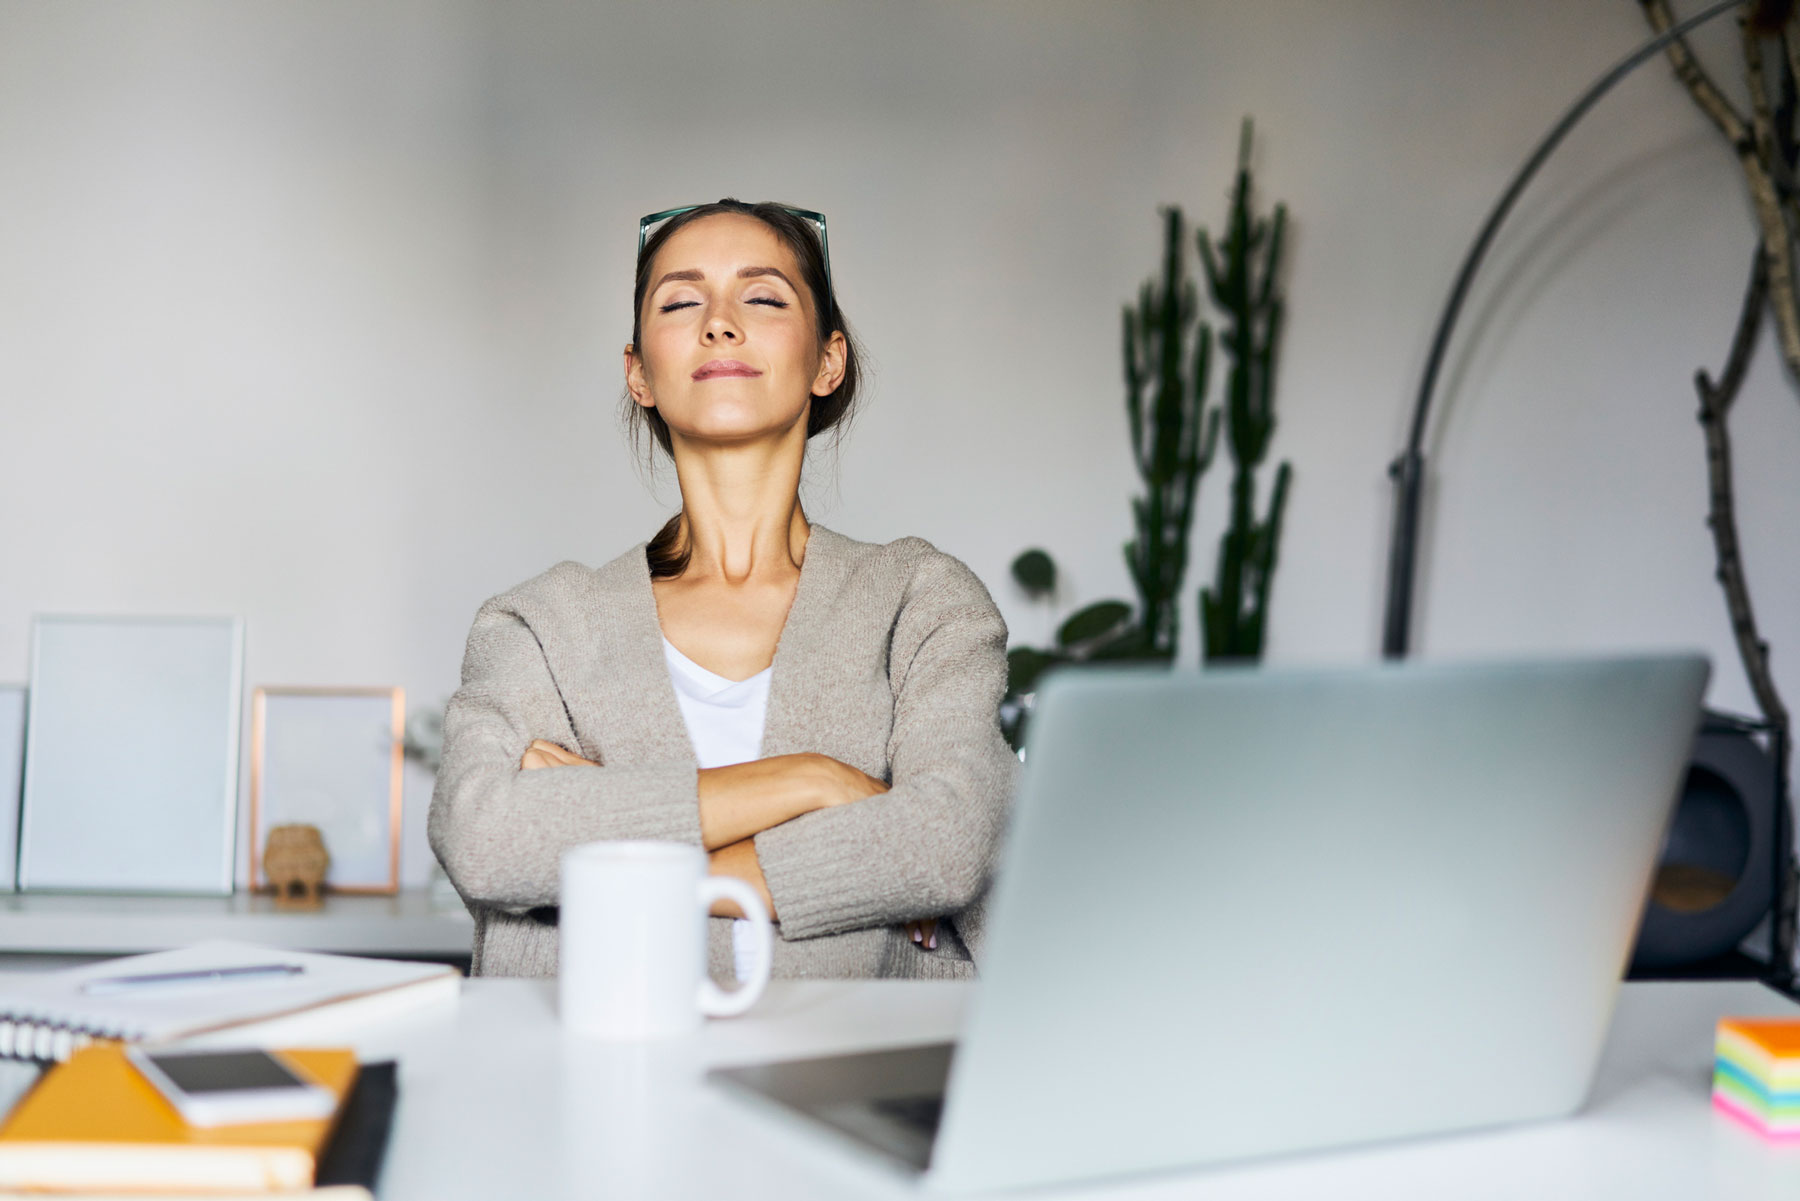 Best Work From Home Companies 2019 - Woman working remotely